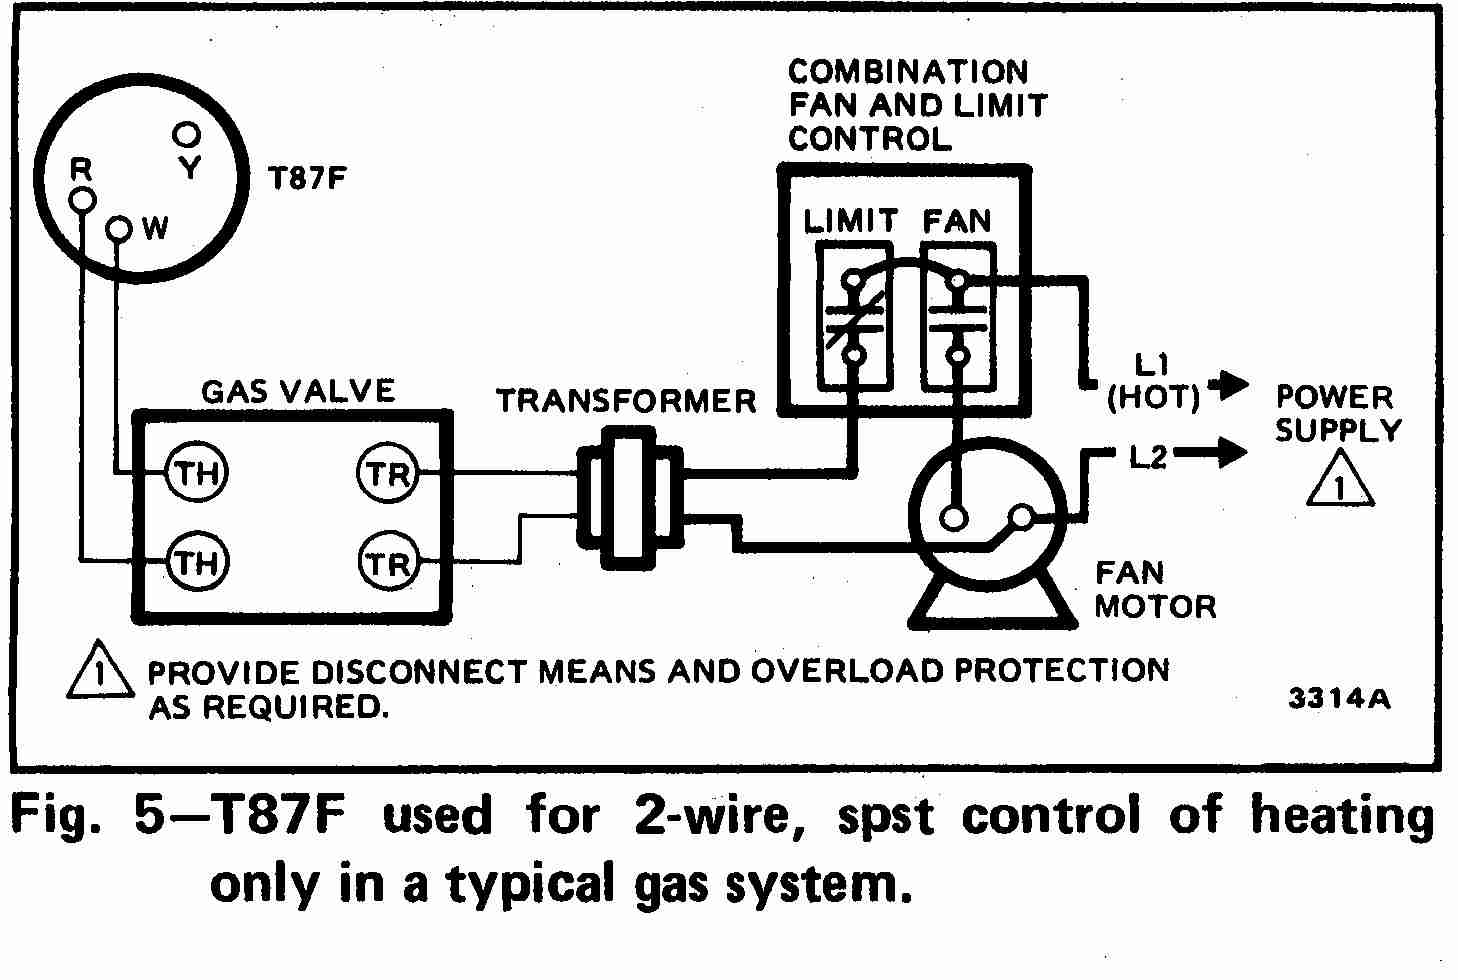 room thermostat wiring diagrams for hvac systems rh inspectapedia com honeywell hvac thermostat wiring diagram Thermostat Wiring Color Code